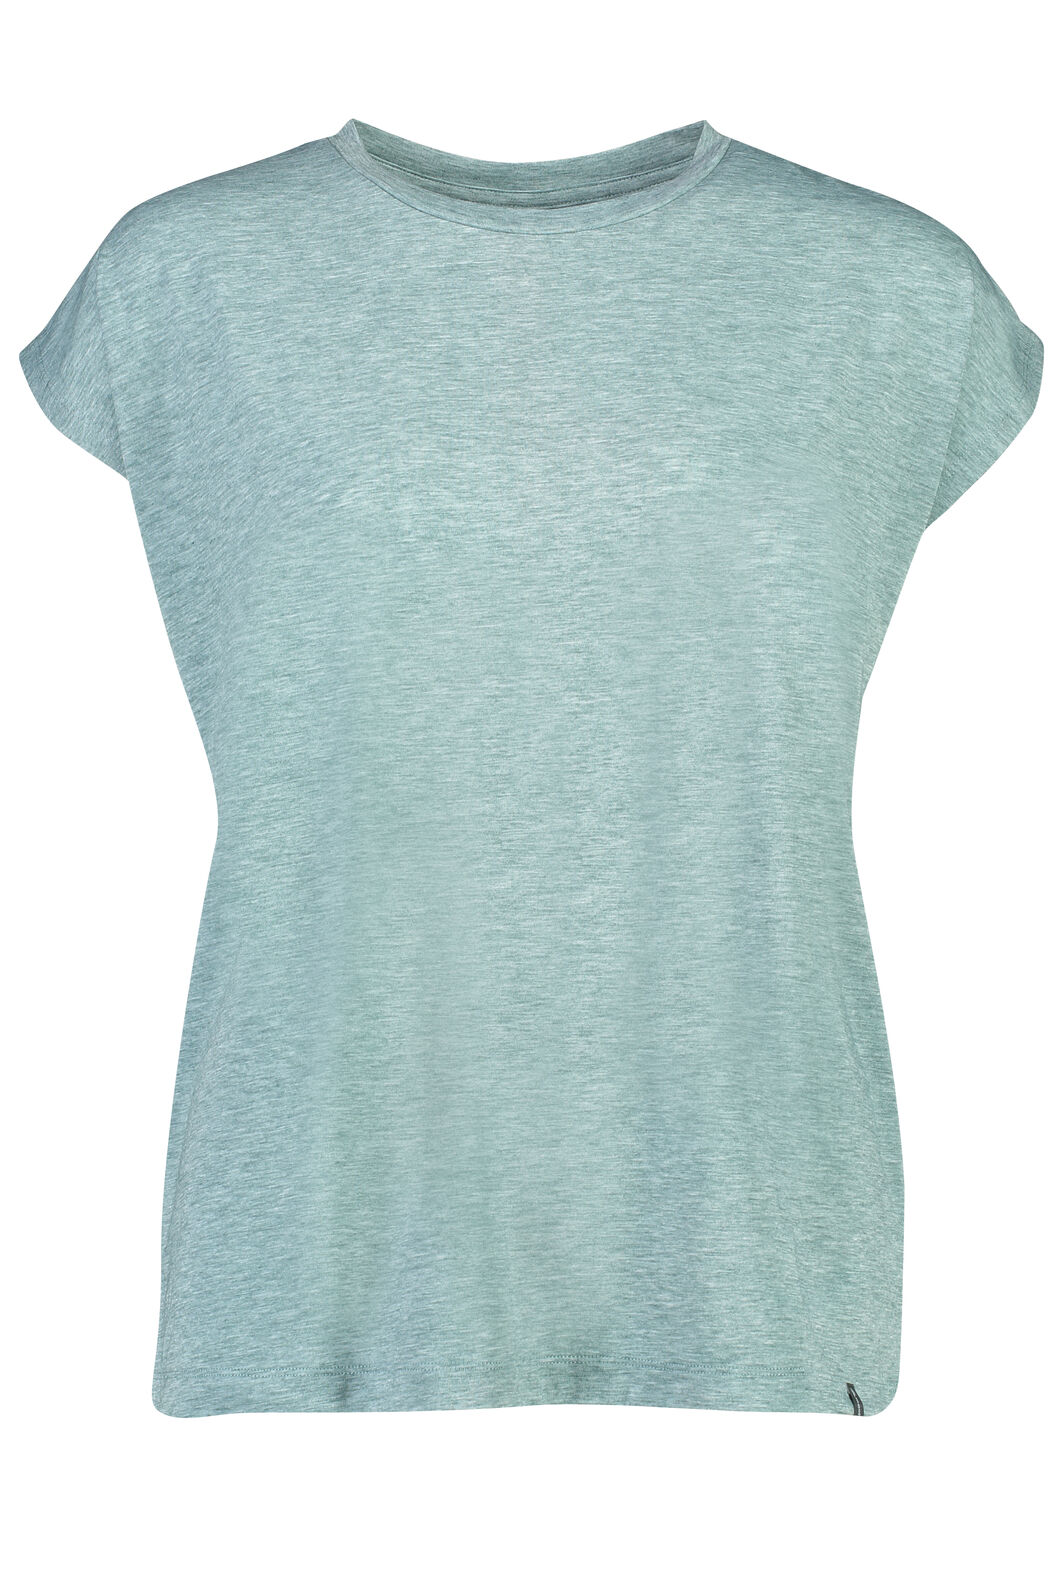 Macpac Horizon Tee - Women's, Botanical Green, hi-res